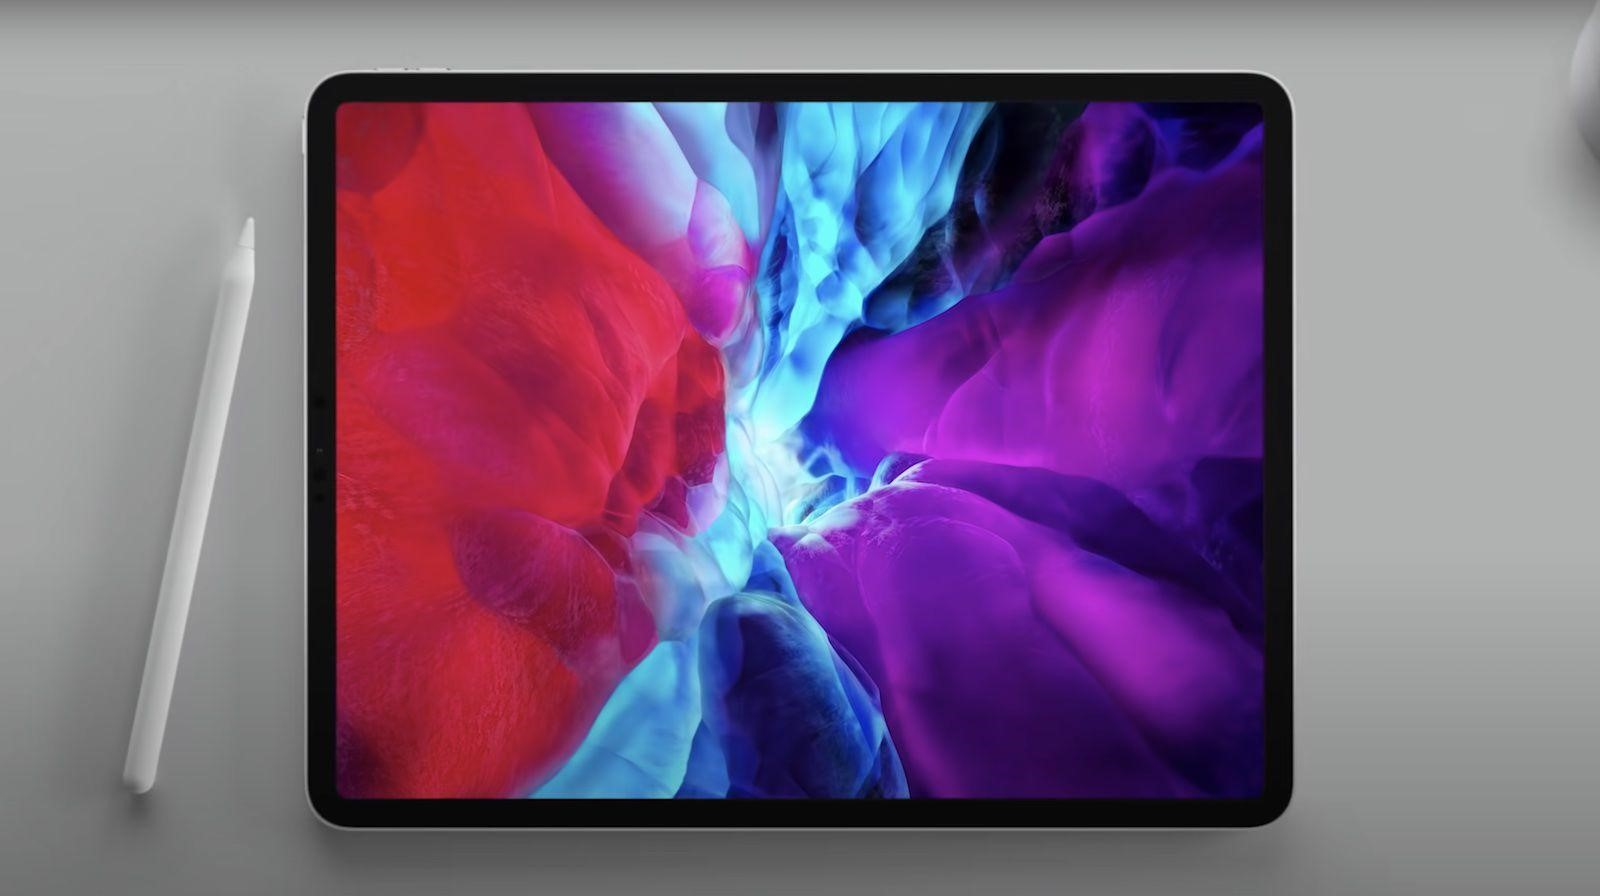 iPad Pro 2021 To Feature An OLED Screen